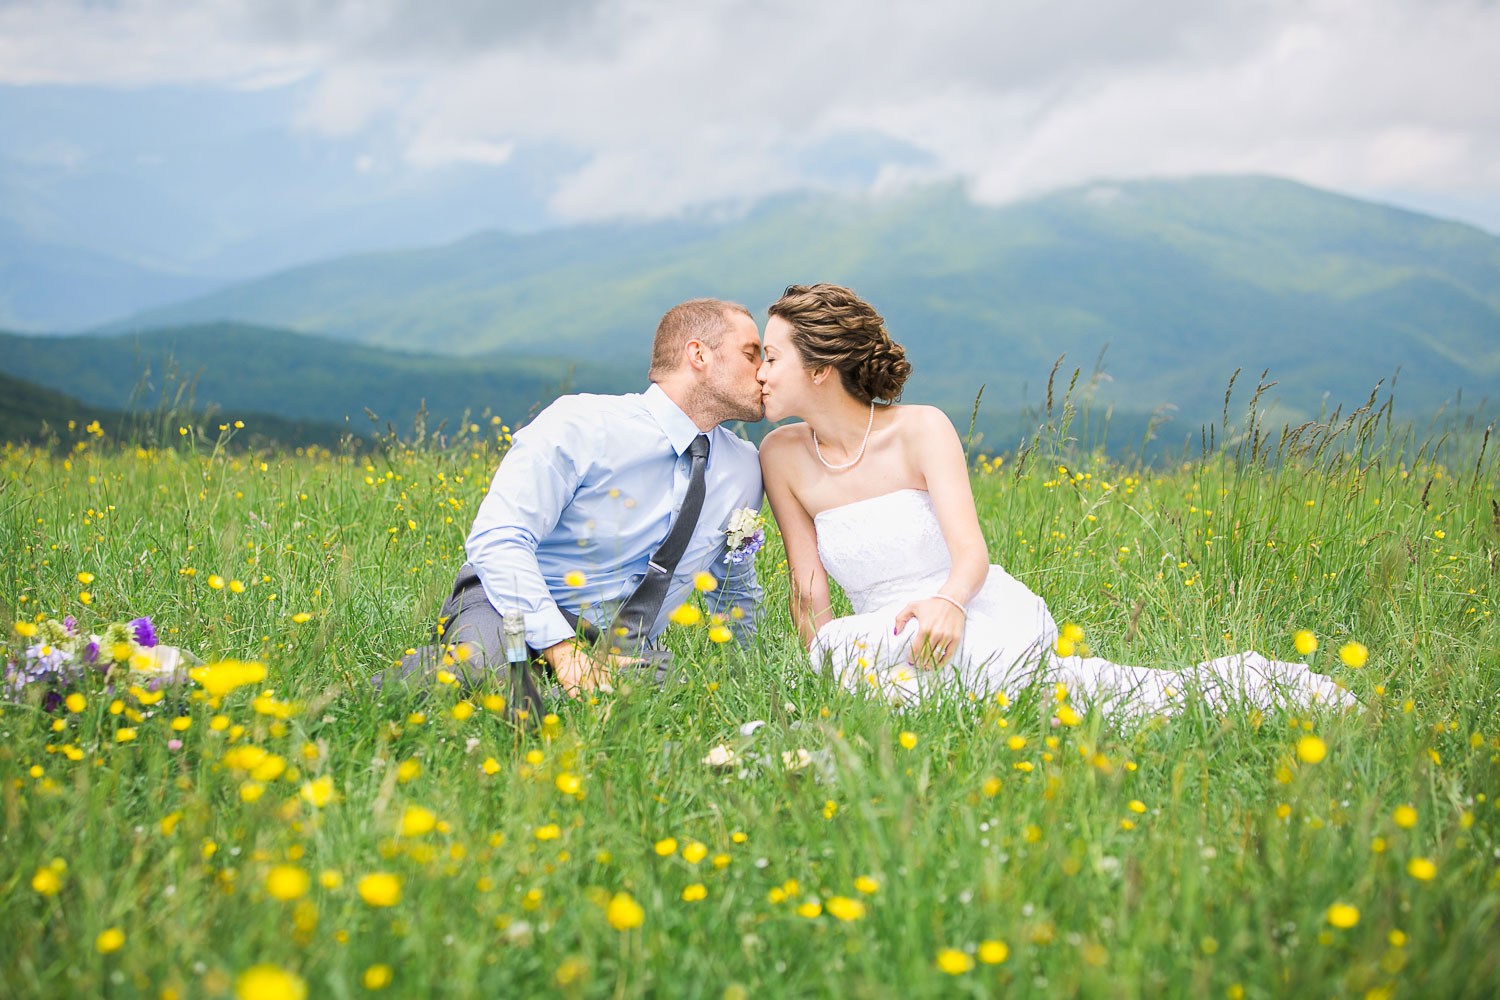 A Mountaintop Elopement in the Wildflowers